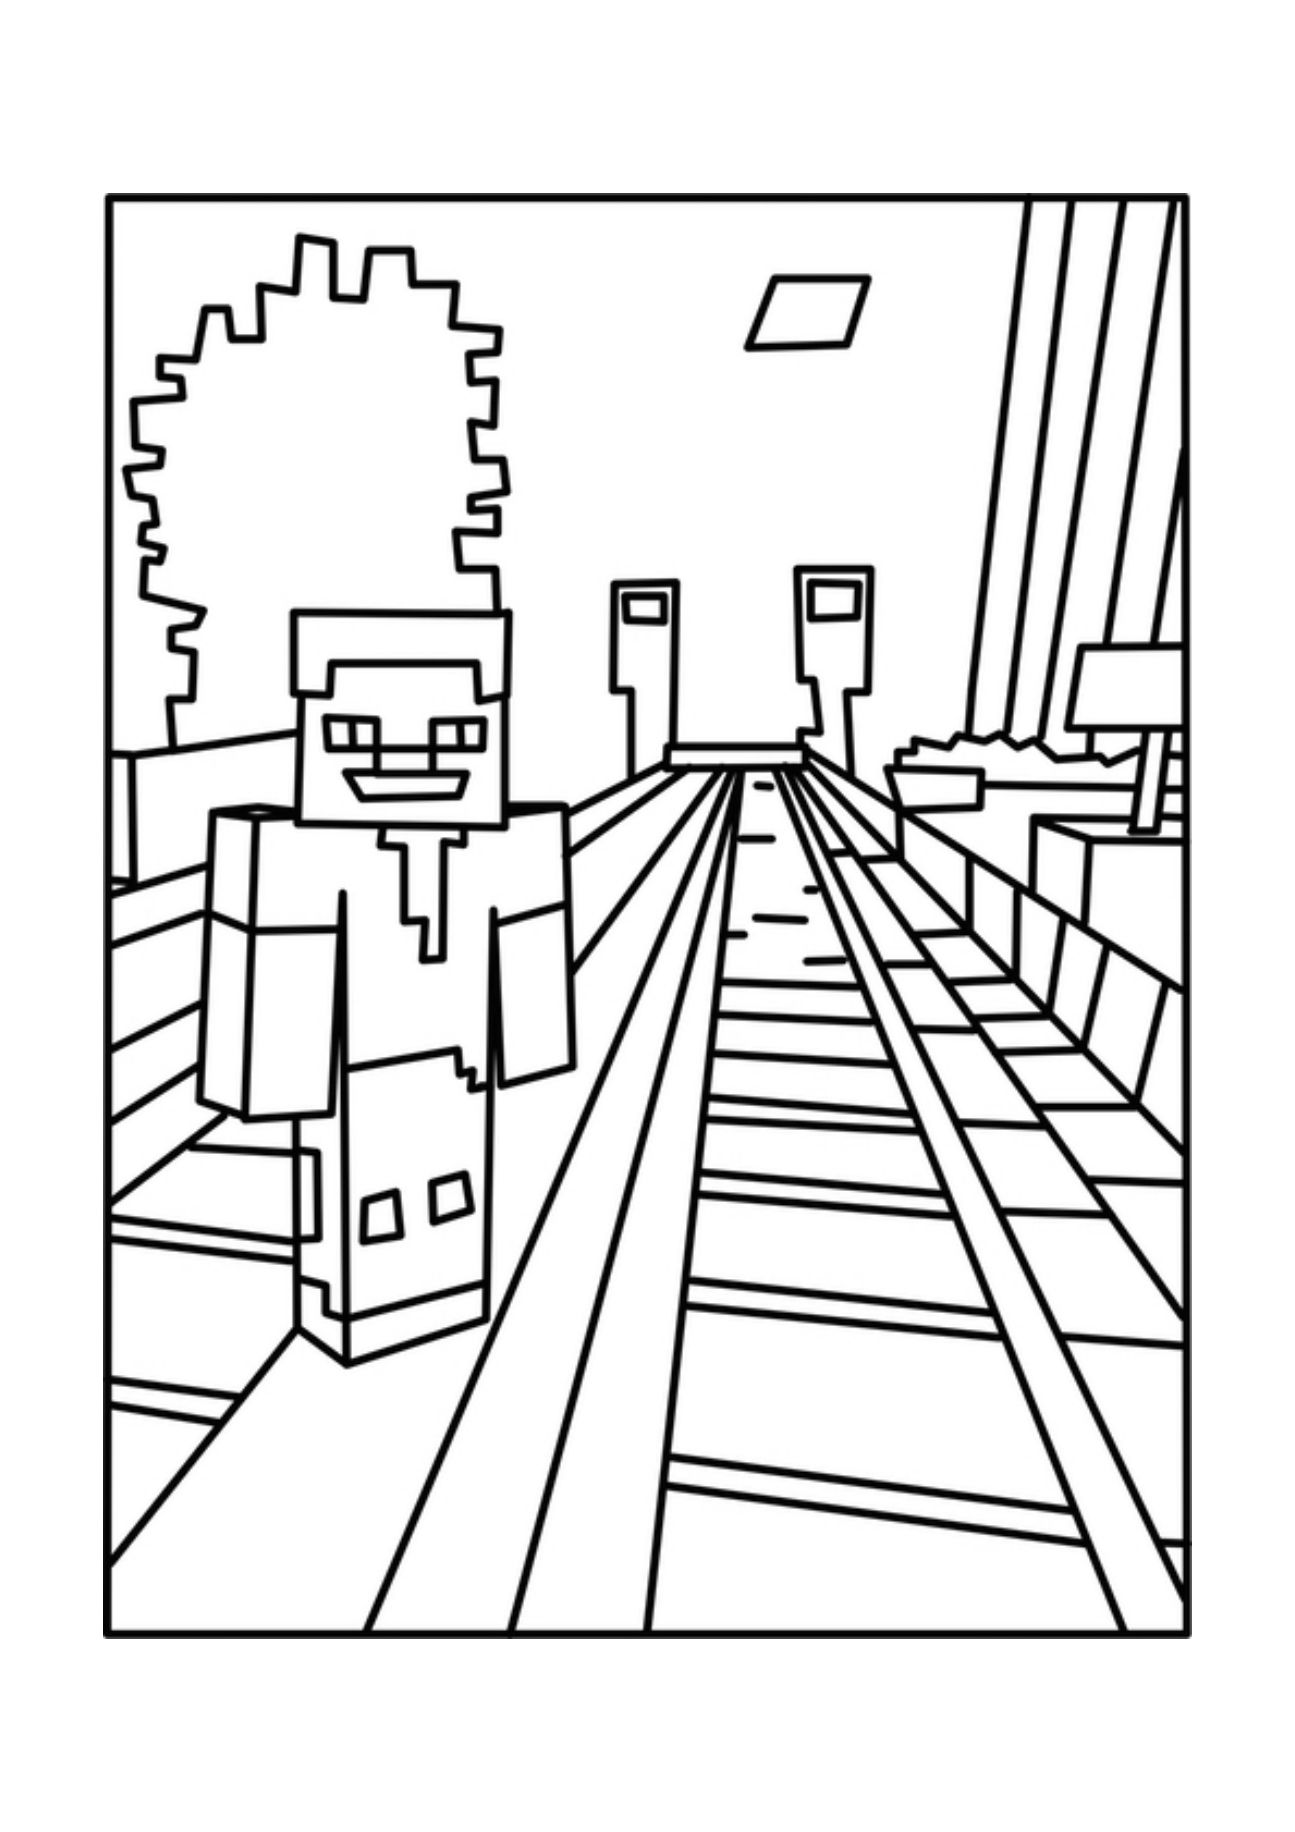 minecraft printouts a free printable minecraft gangnam style coloring page minecraft printouts